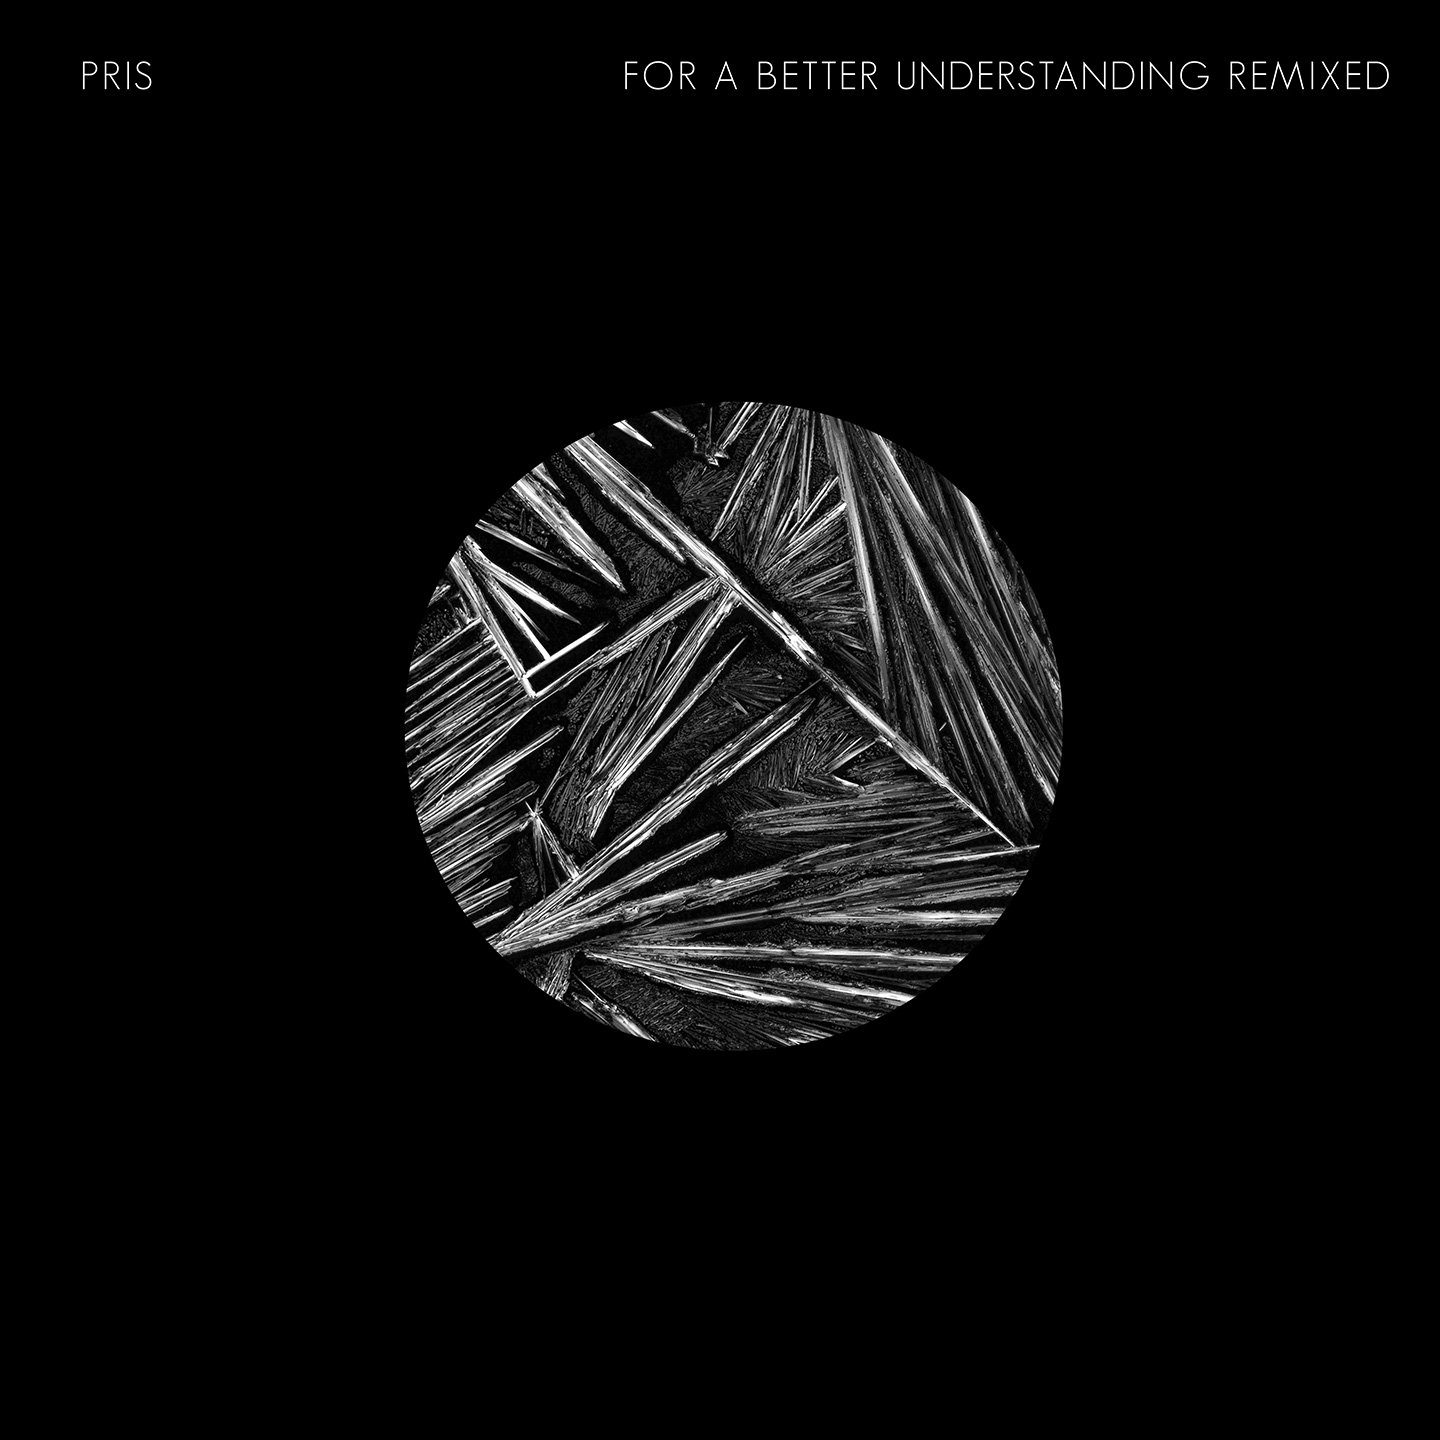 Pris - For A Better Understanding Remixed